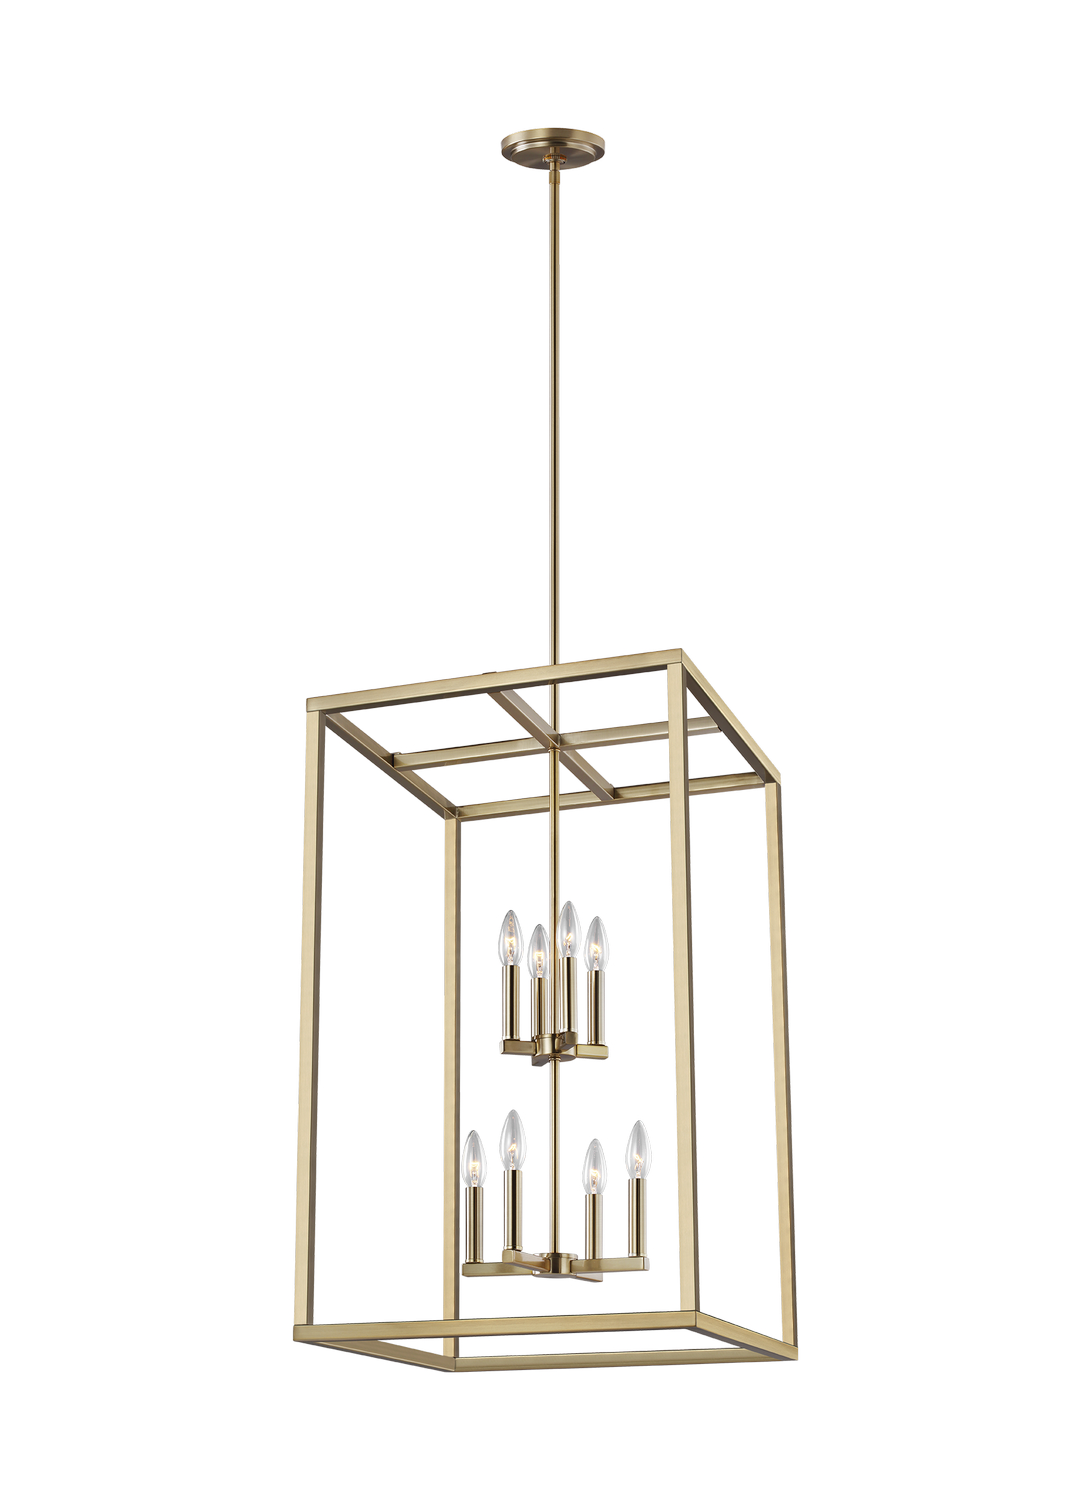 Eight Light Hall Foyer Pendant from the Moffet Street collection by Seagull 5134508EN 848